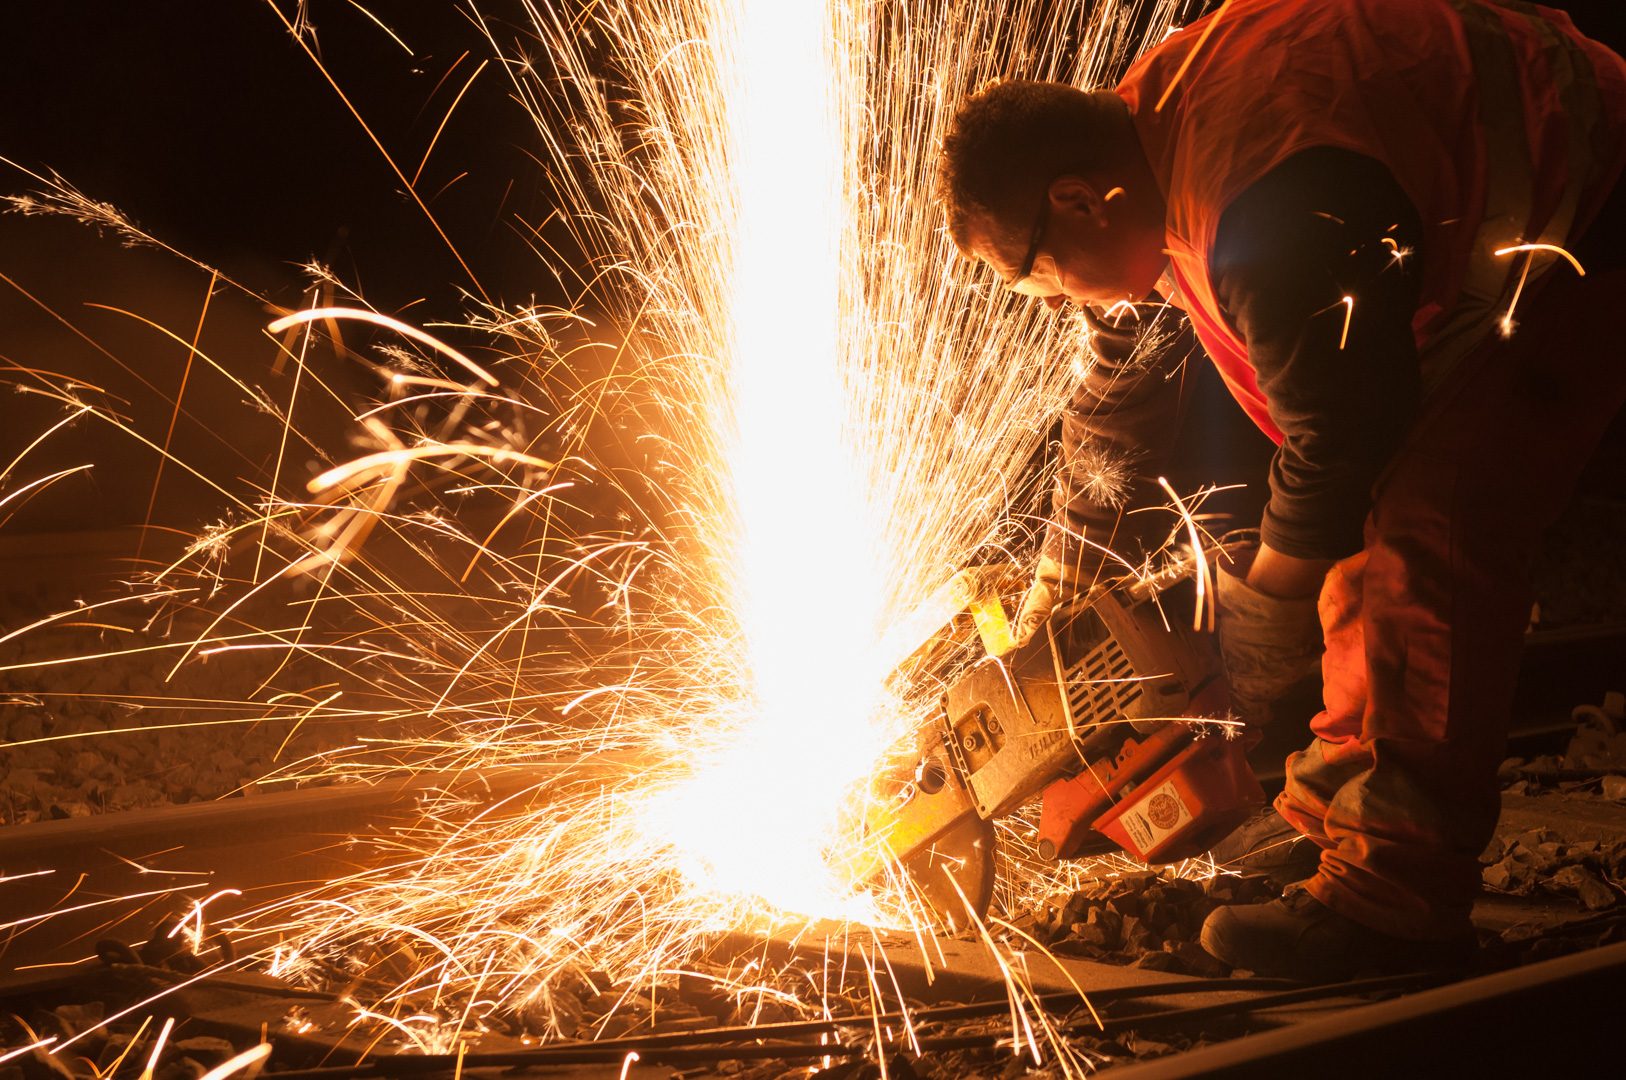 Workers at cutting work in track laying construction with sparks